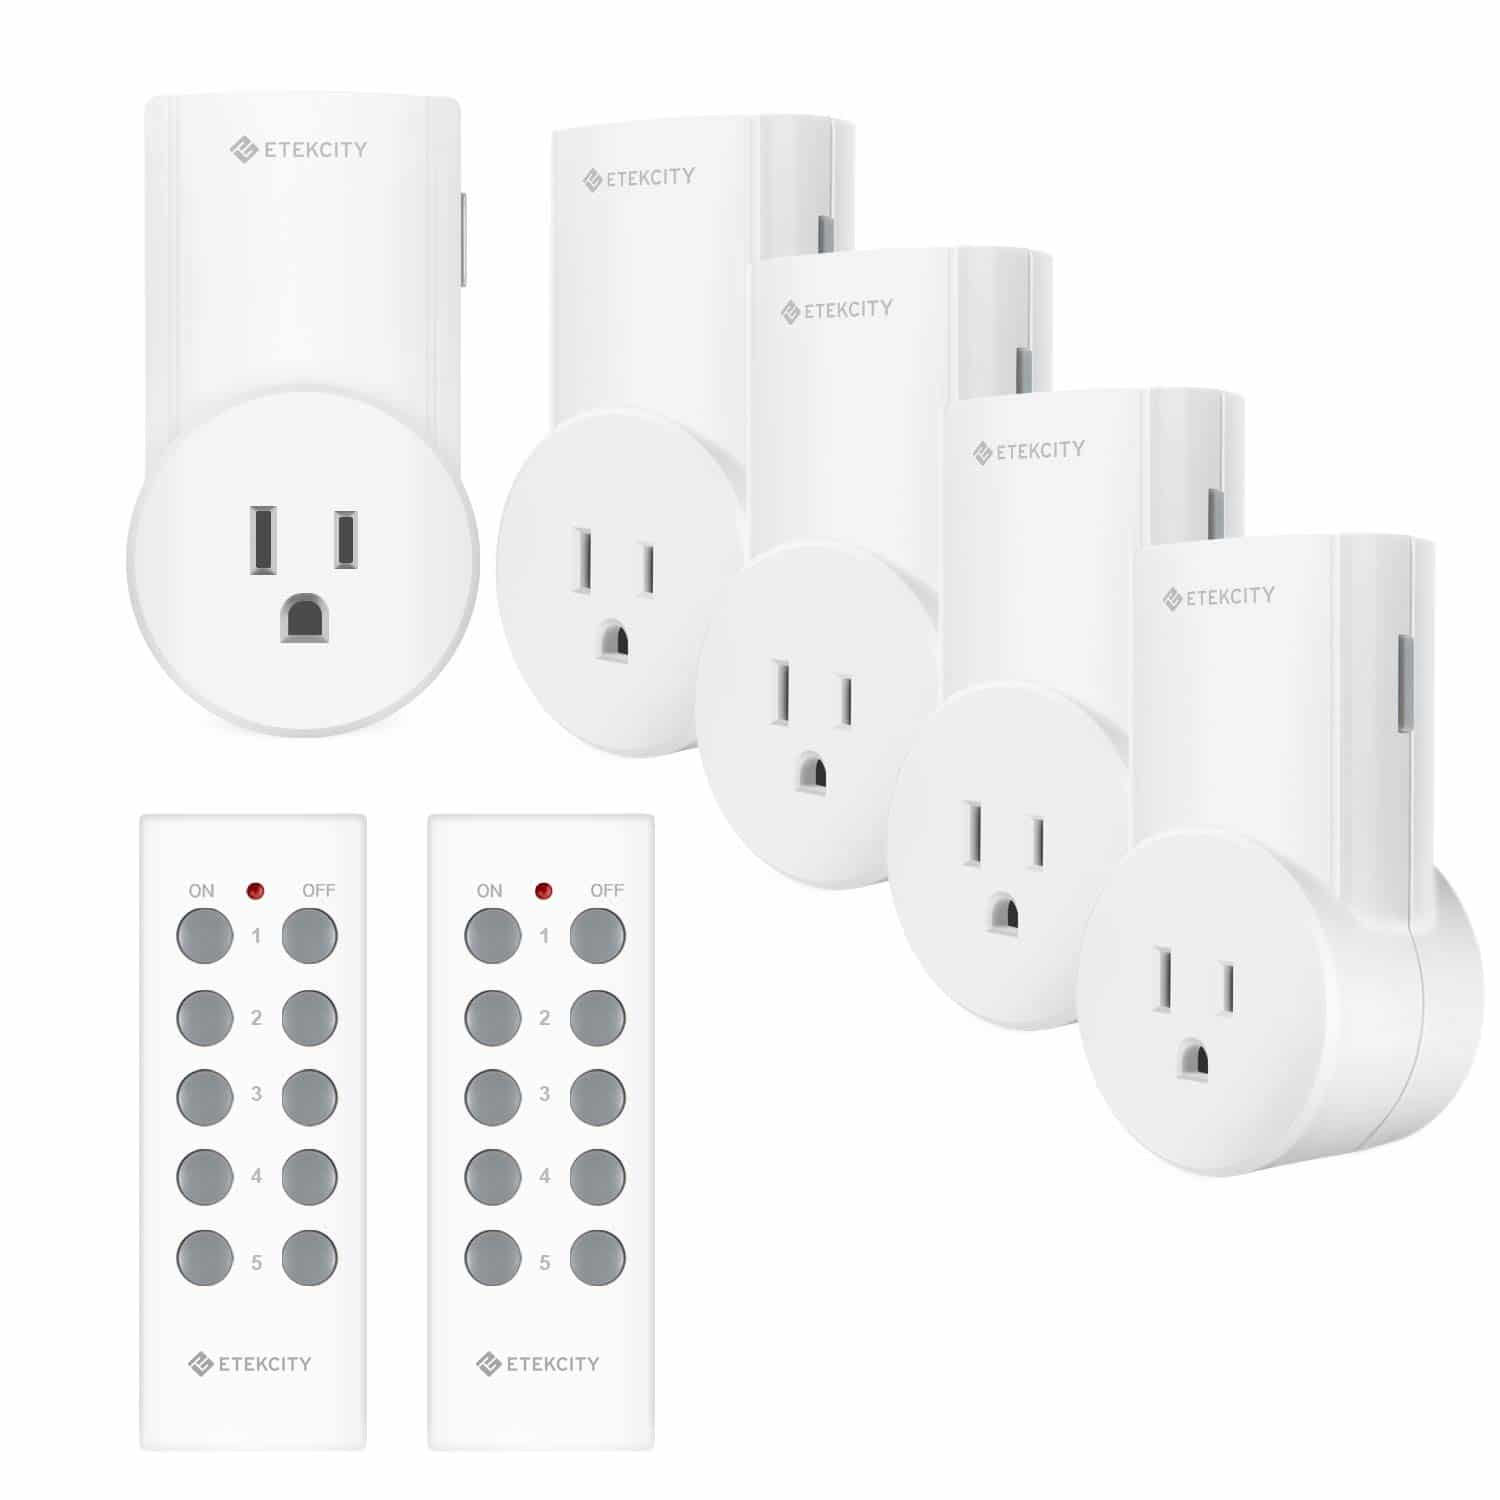 Etekcity Wireless Remote-Control Outlet Light Switch